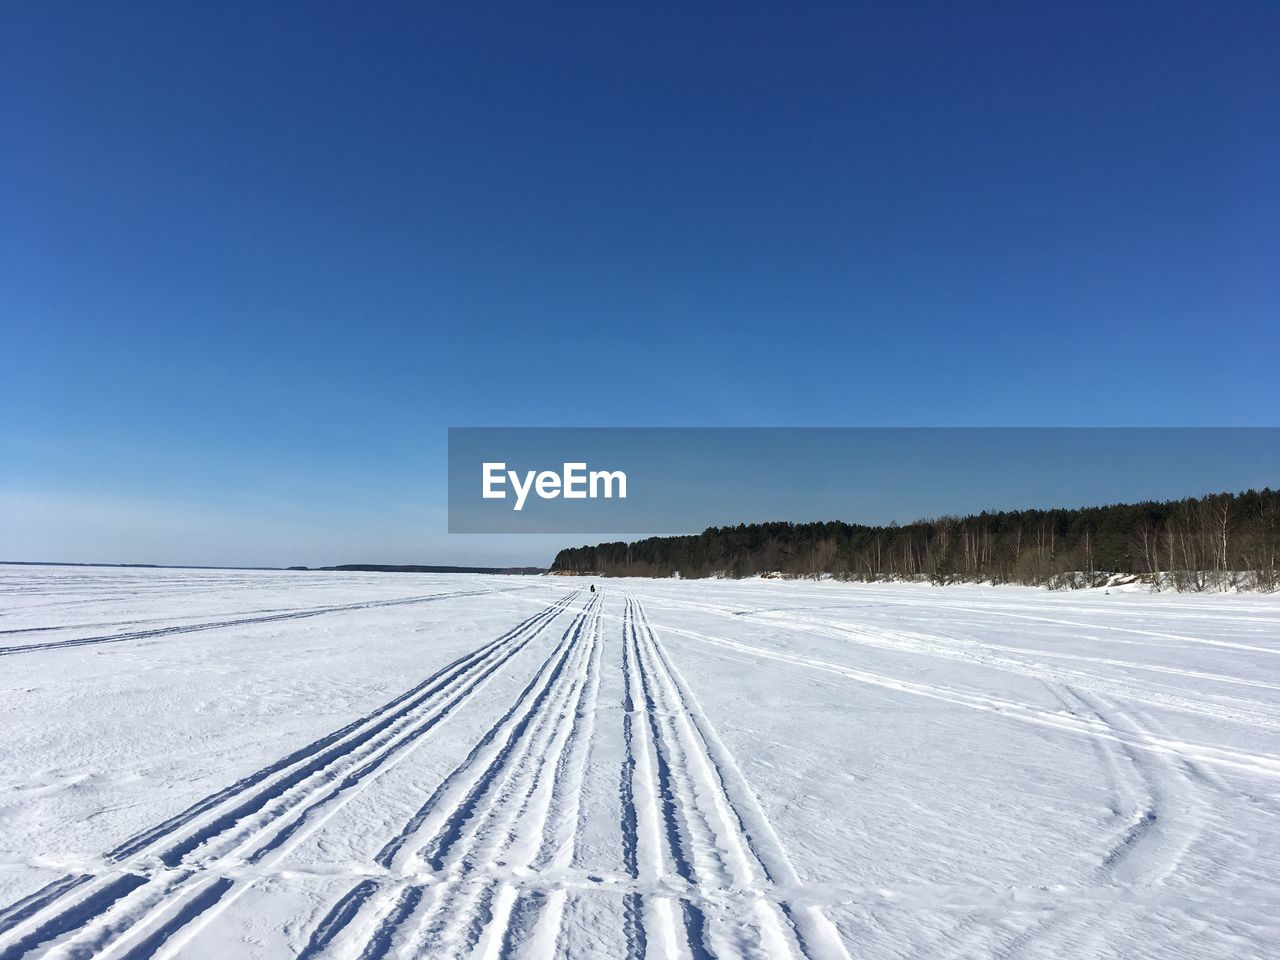 snow, winter, cold temperature, sky, blue, copy space, clear sky, white color, beauty in nature, scenics - nature, nature, tire track, day, environment, tranquil scene, no people, covering, landscape, tranquility, outdoors, snowcapped mountain